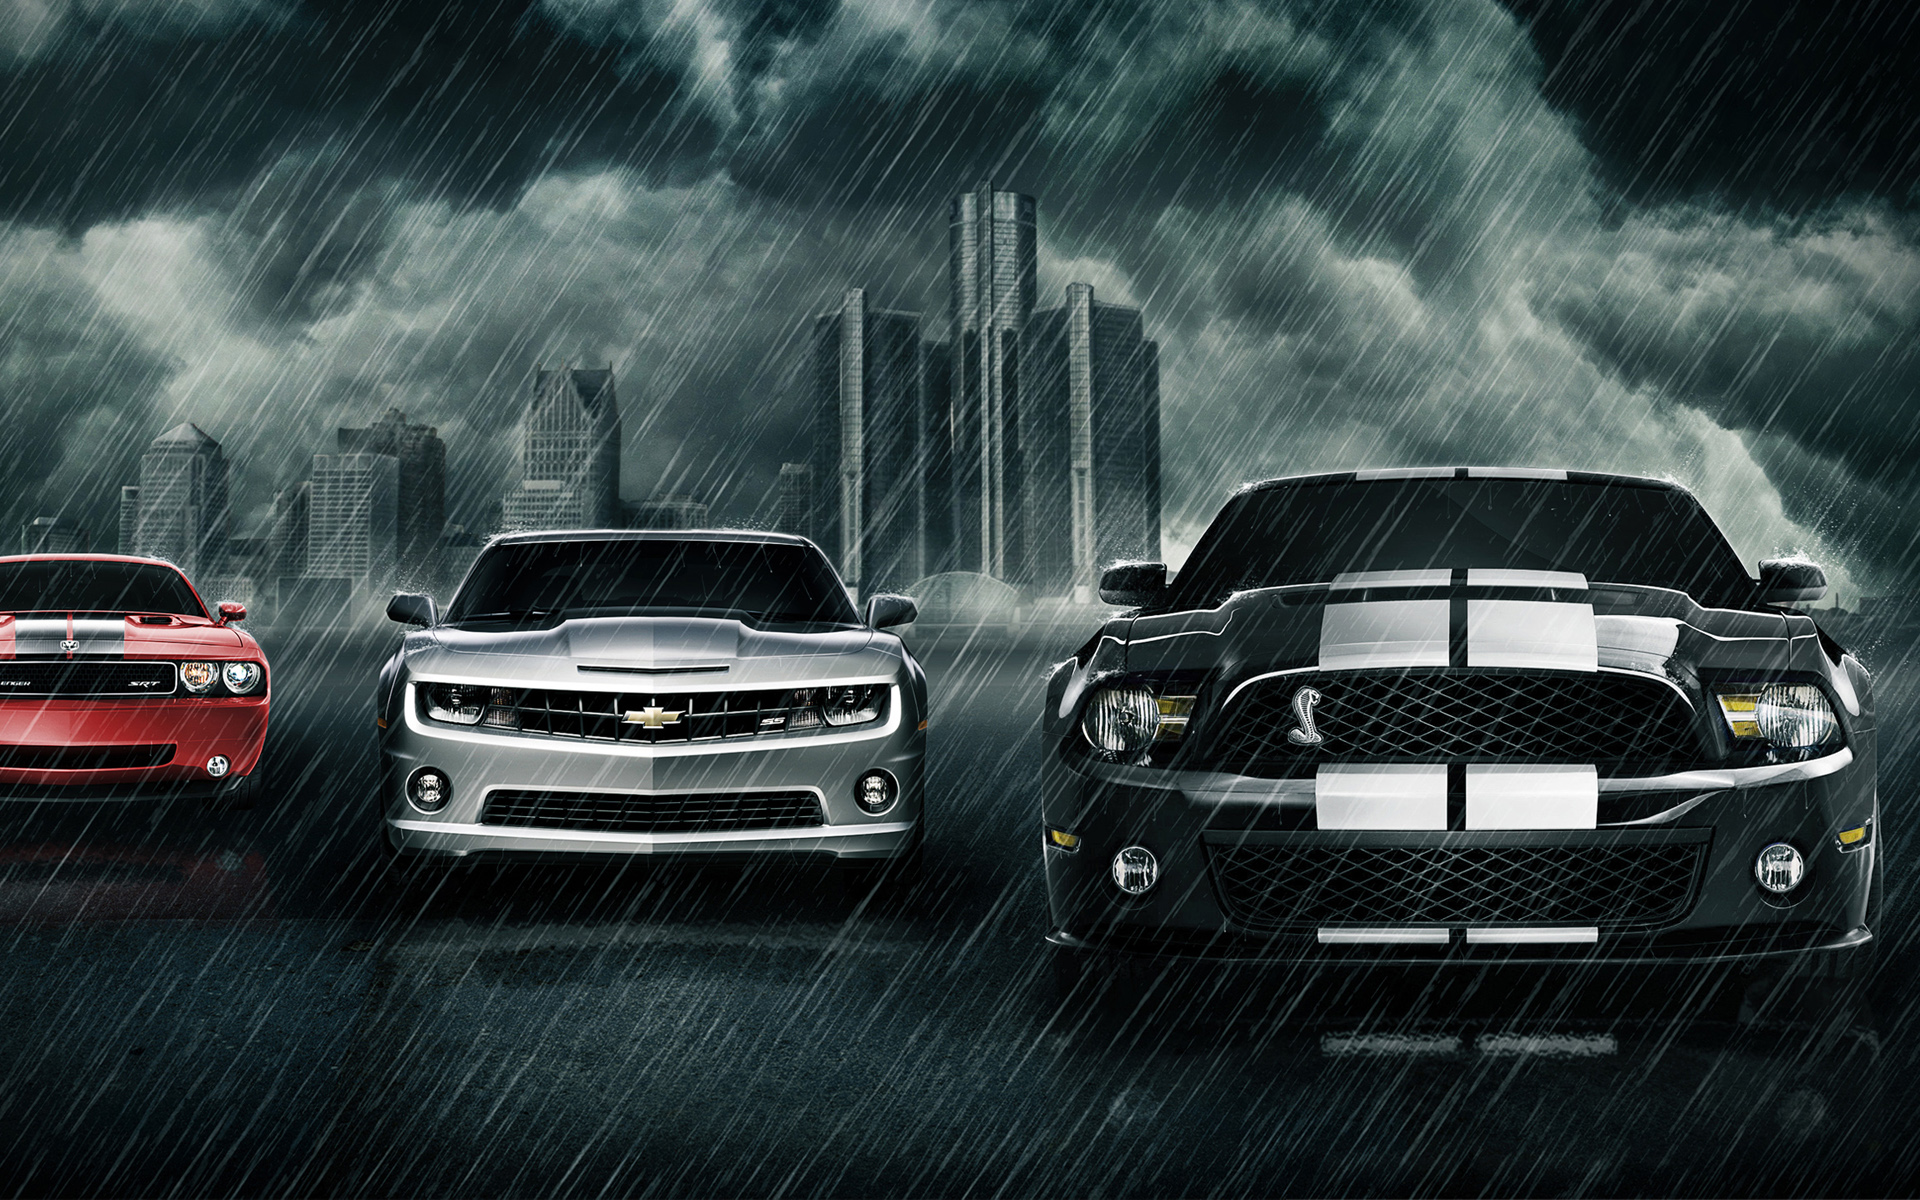 Hd wallpaper of cars - Muscle Cars Wallpapers Hd Wallpapers